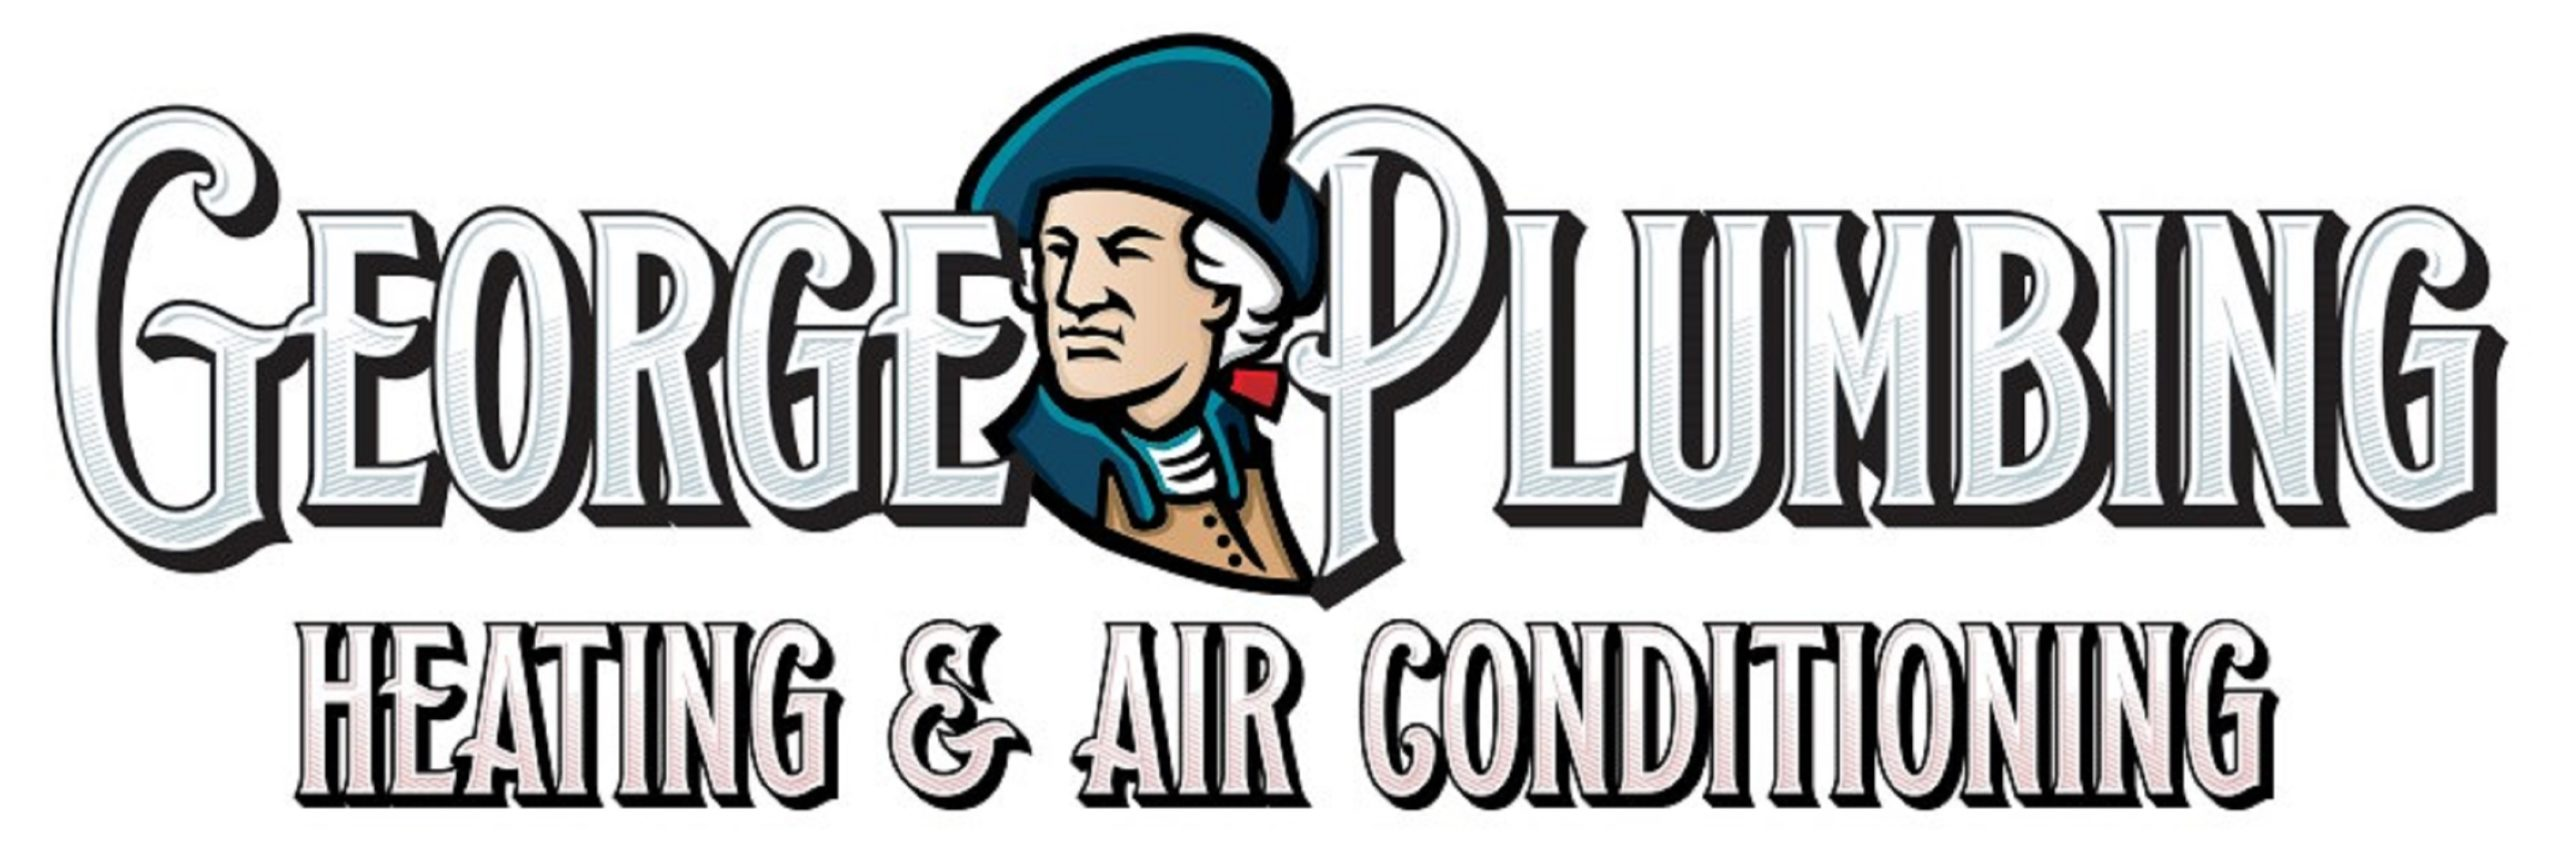 george plumbing heating and air logo